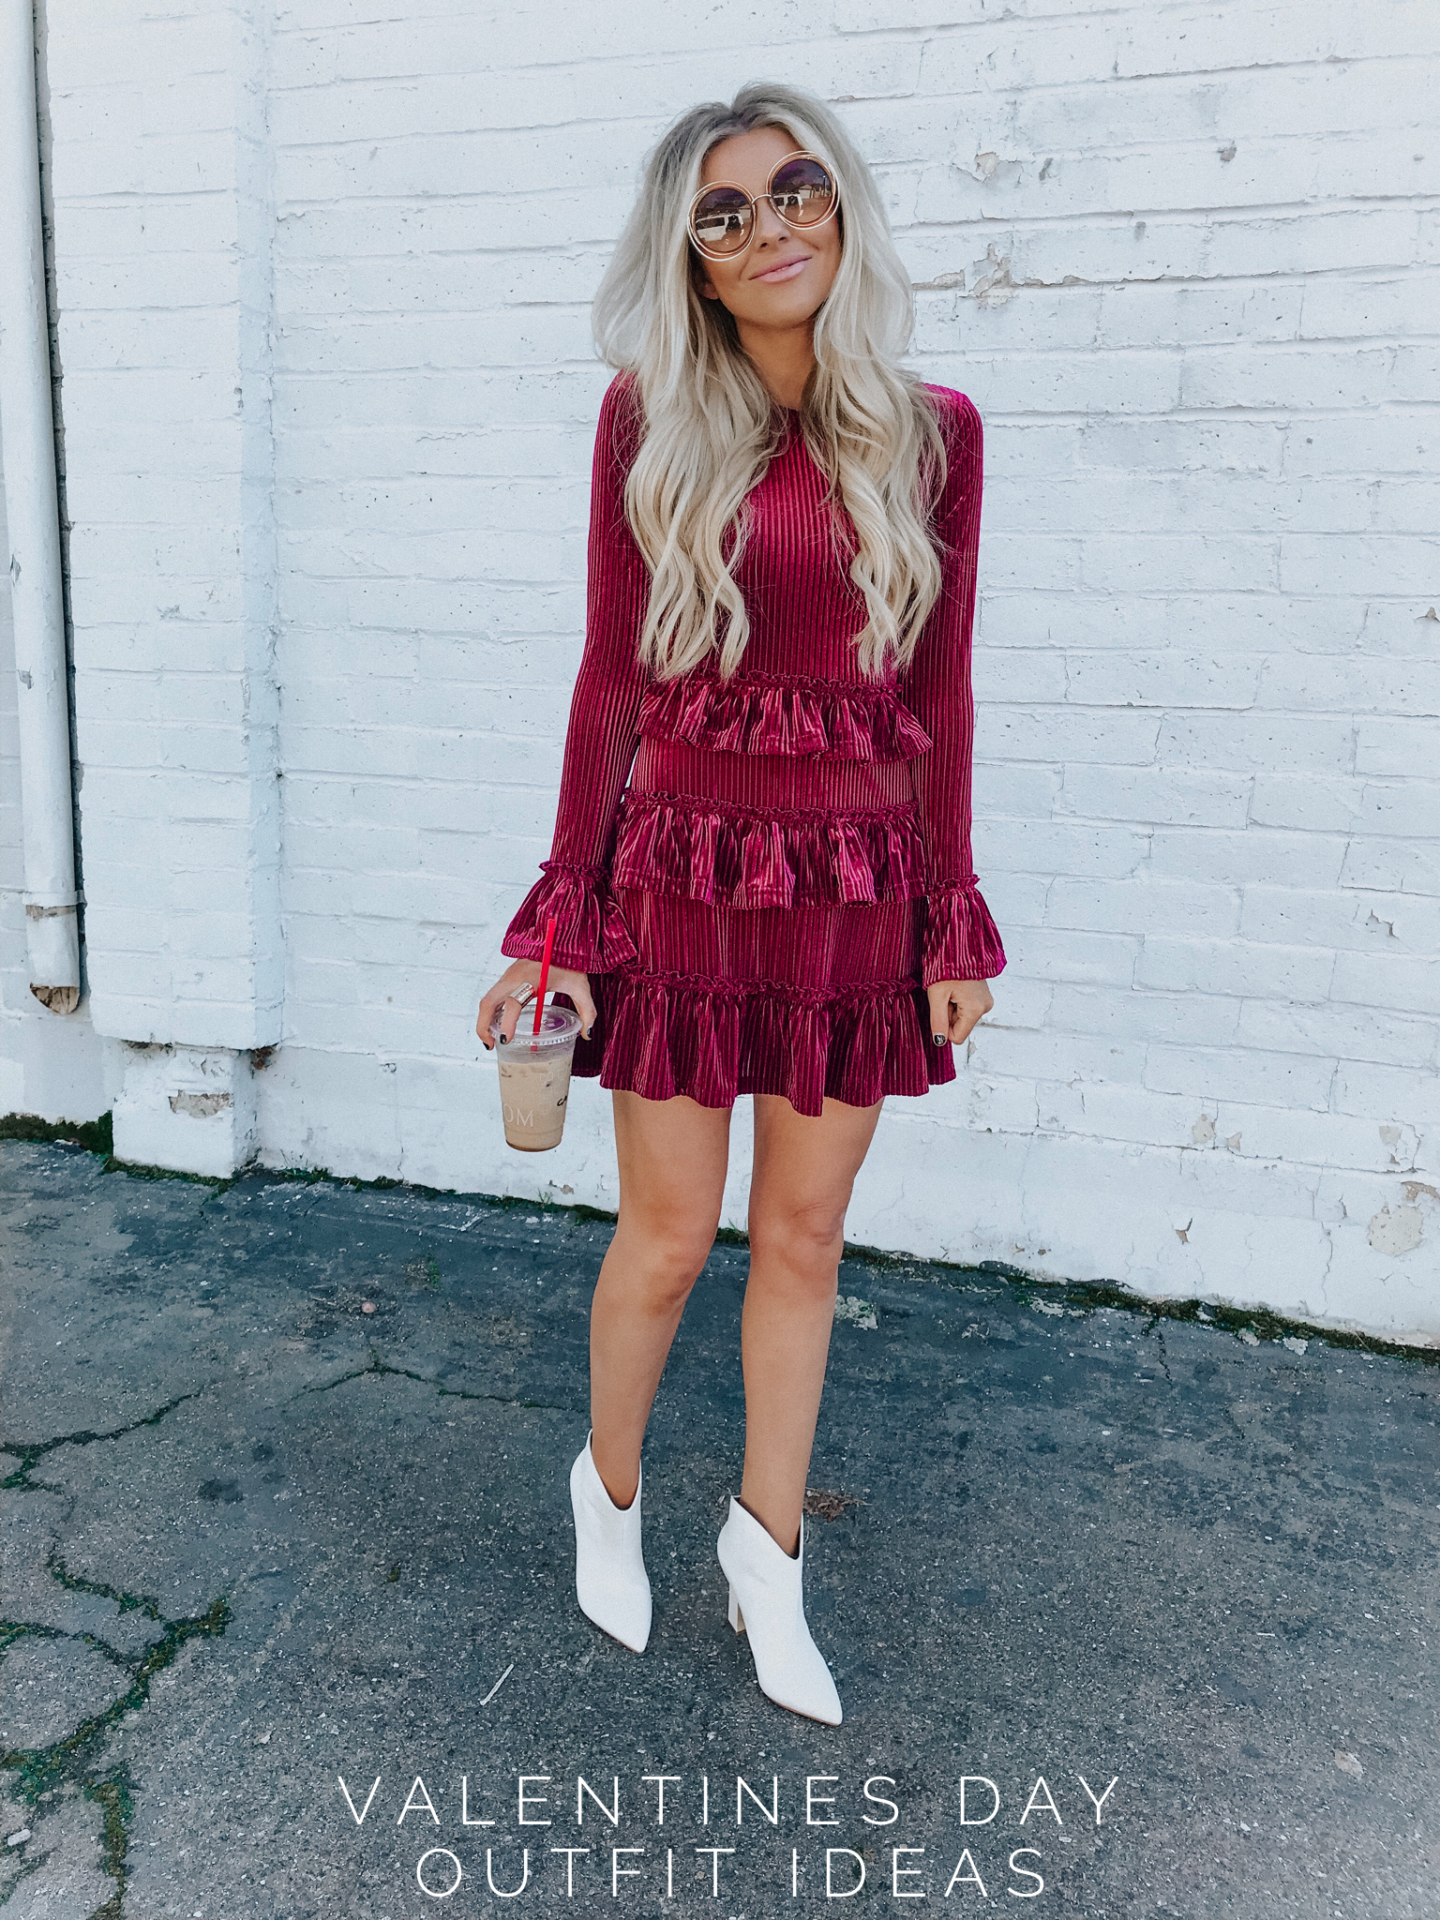 Valentines Day Outfit Ideas